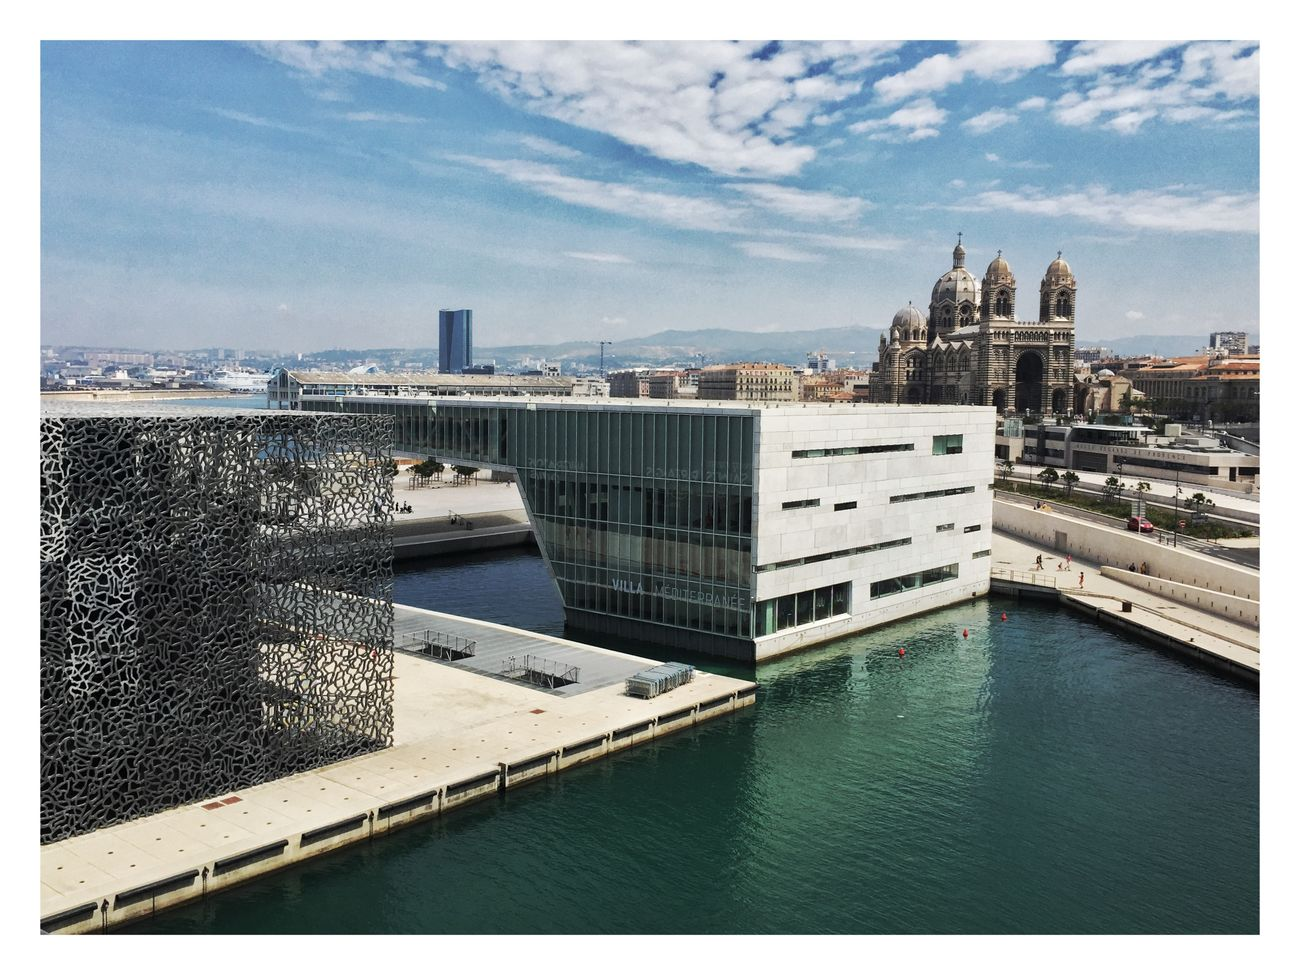 Architecture ... The Architect - 2015 EyeEm Awards NEM Architecture Architecturelovers Church :: MUCEM And Fort St-Jean, Marseille :: Feel The Journey